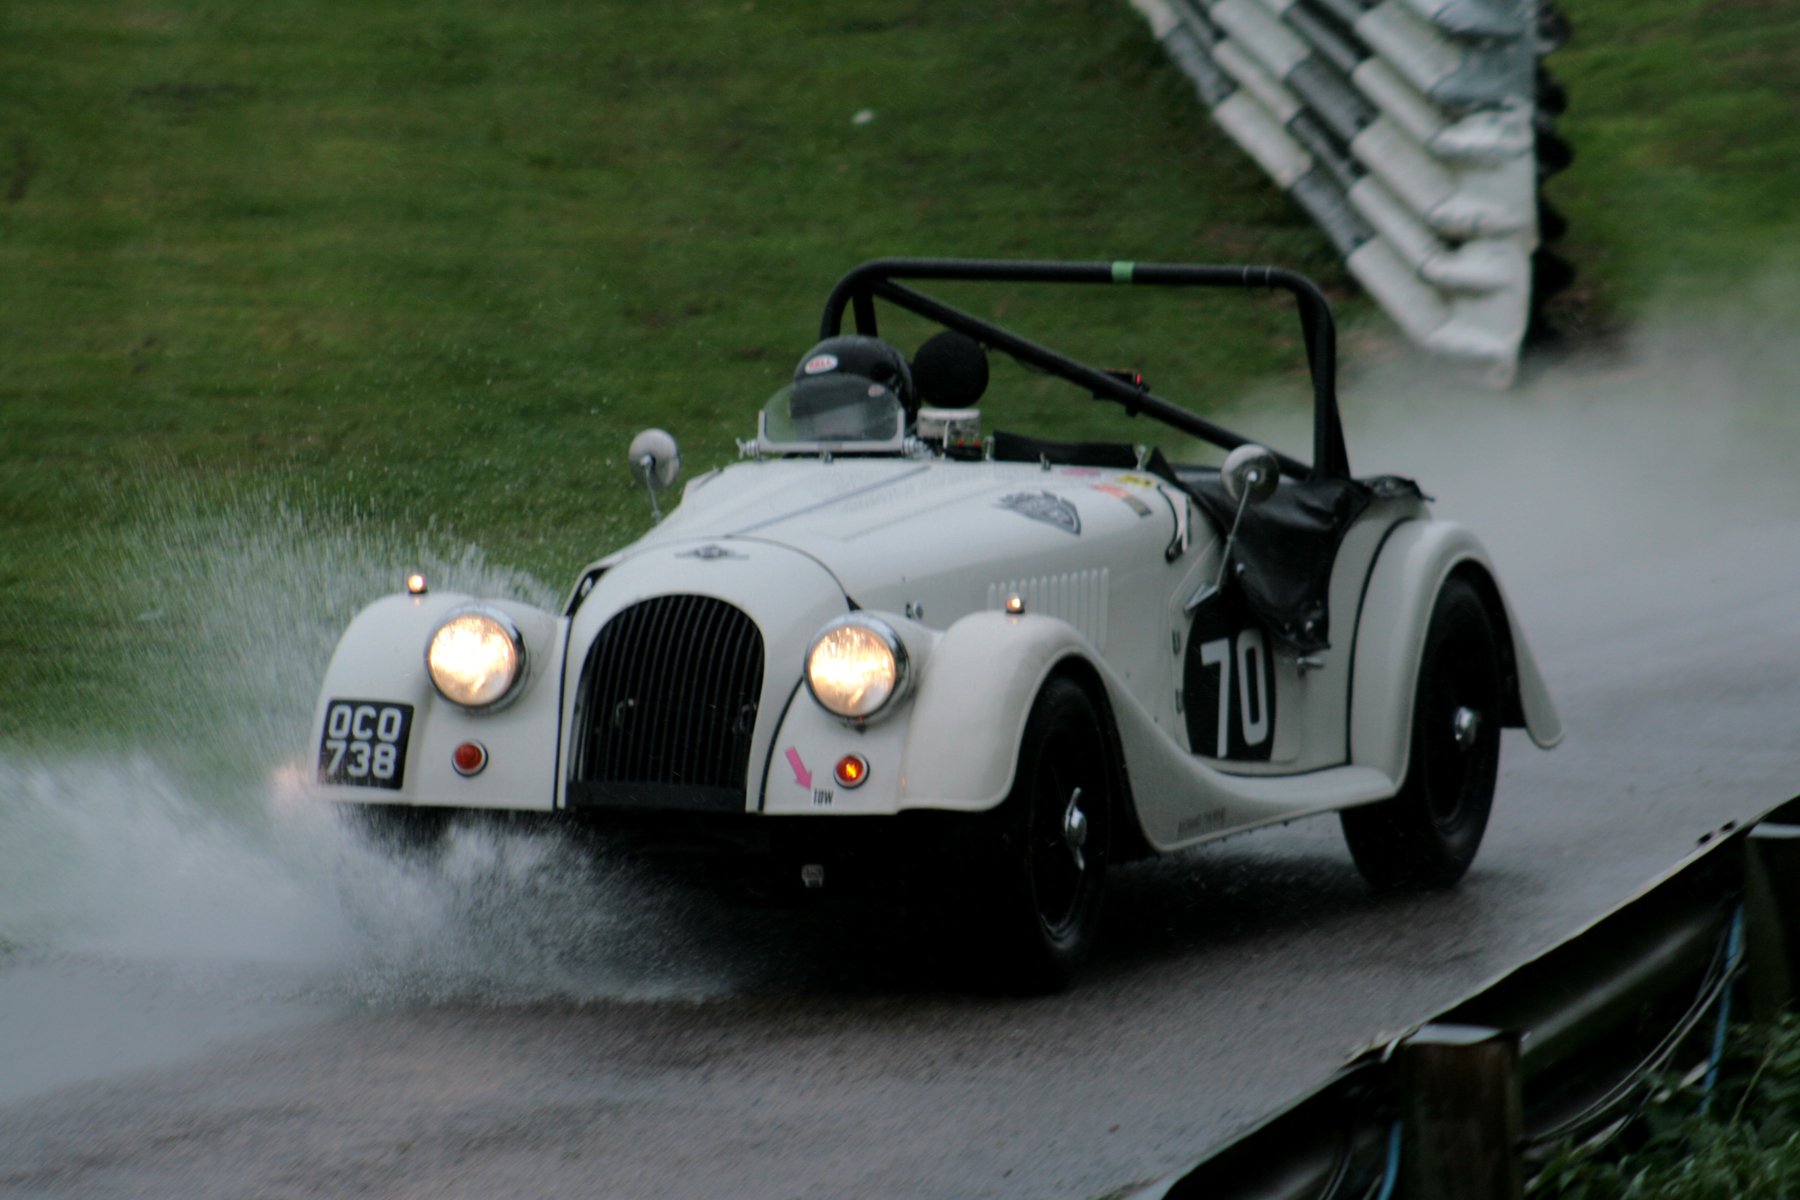 Alan House takes his Morgan Plus 4 out onto the track for qualifying  Photo - John Turner